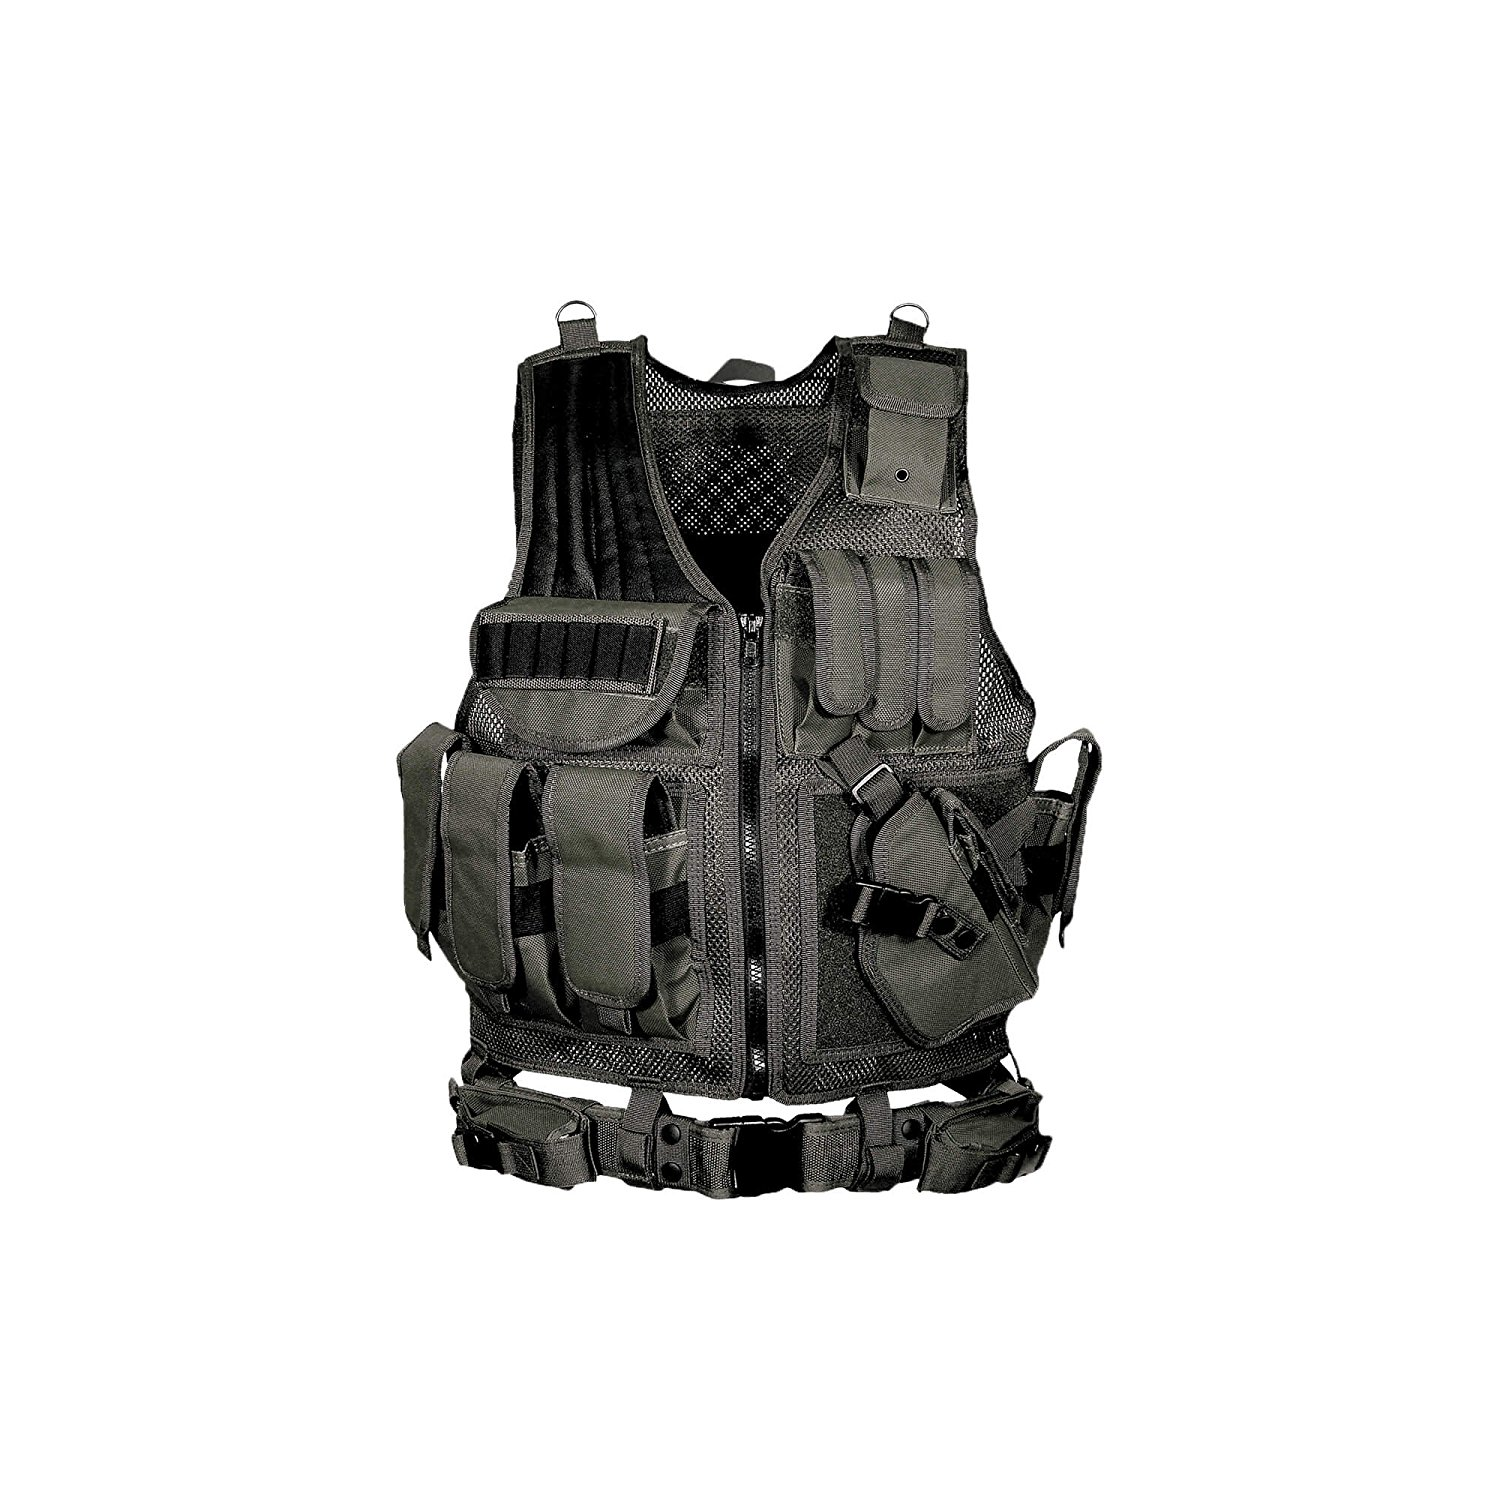 UTG 547 Law Enforcement Tactical Vest, 4 Colors Available, 2 Large Internal Zippered Pockets